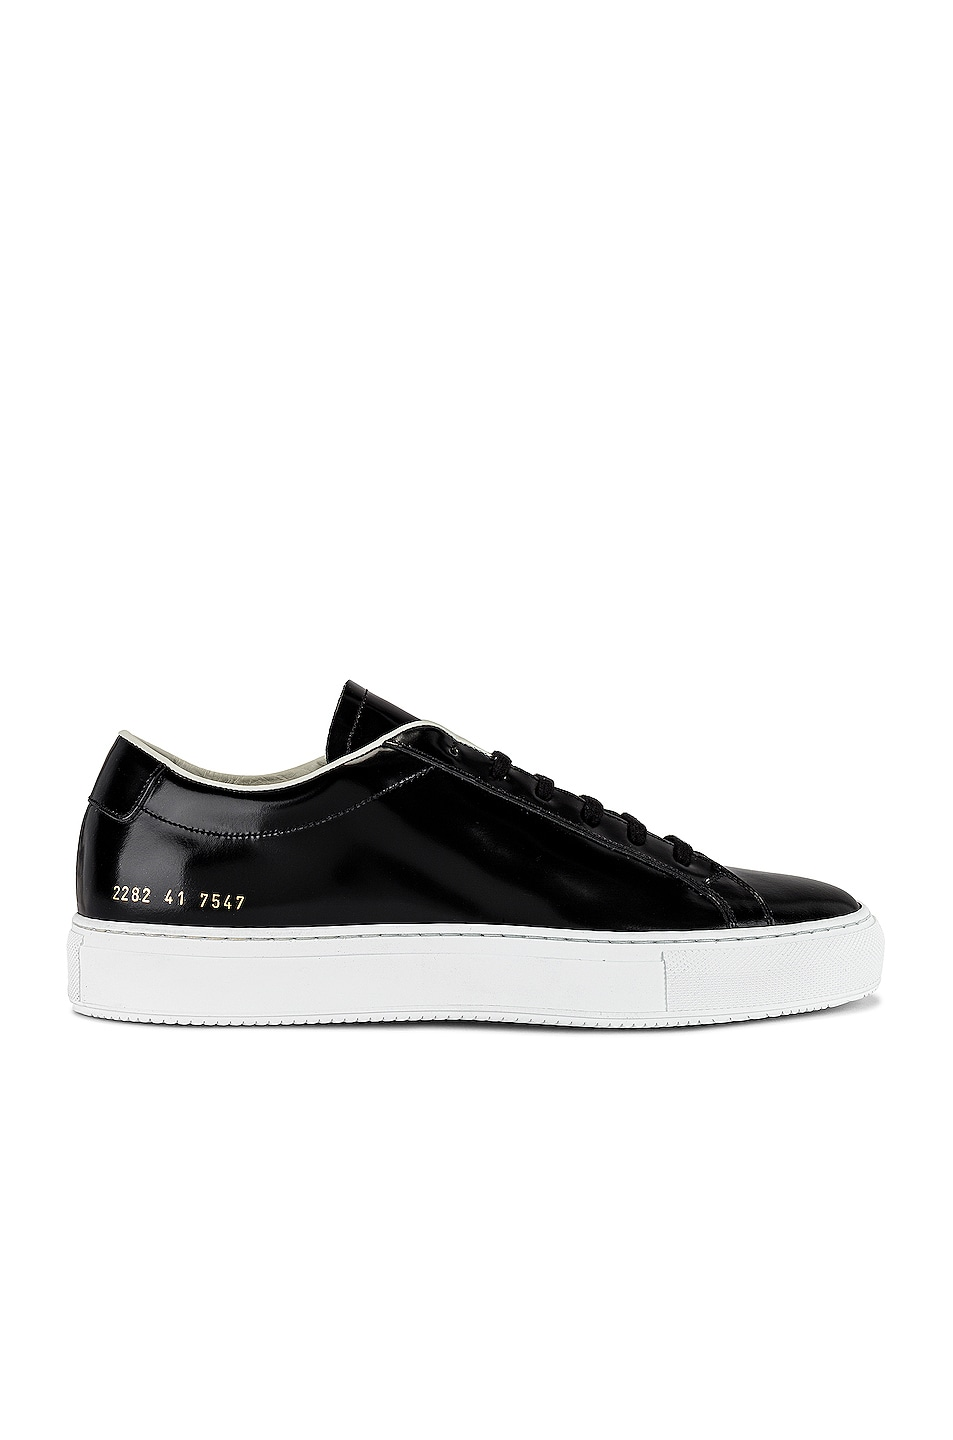 Image 1 of Common Projects Original Vintage Low Top Sneaker in Black & Off White